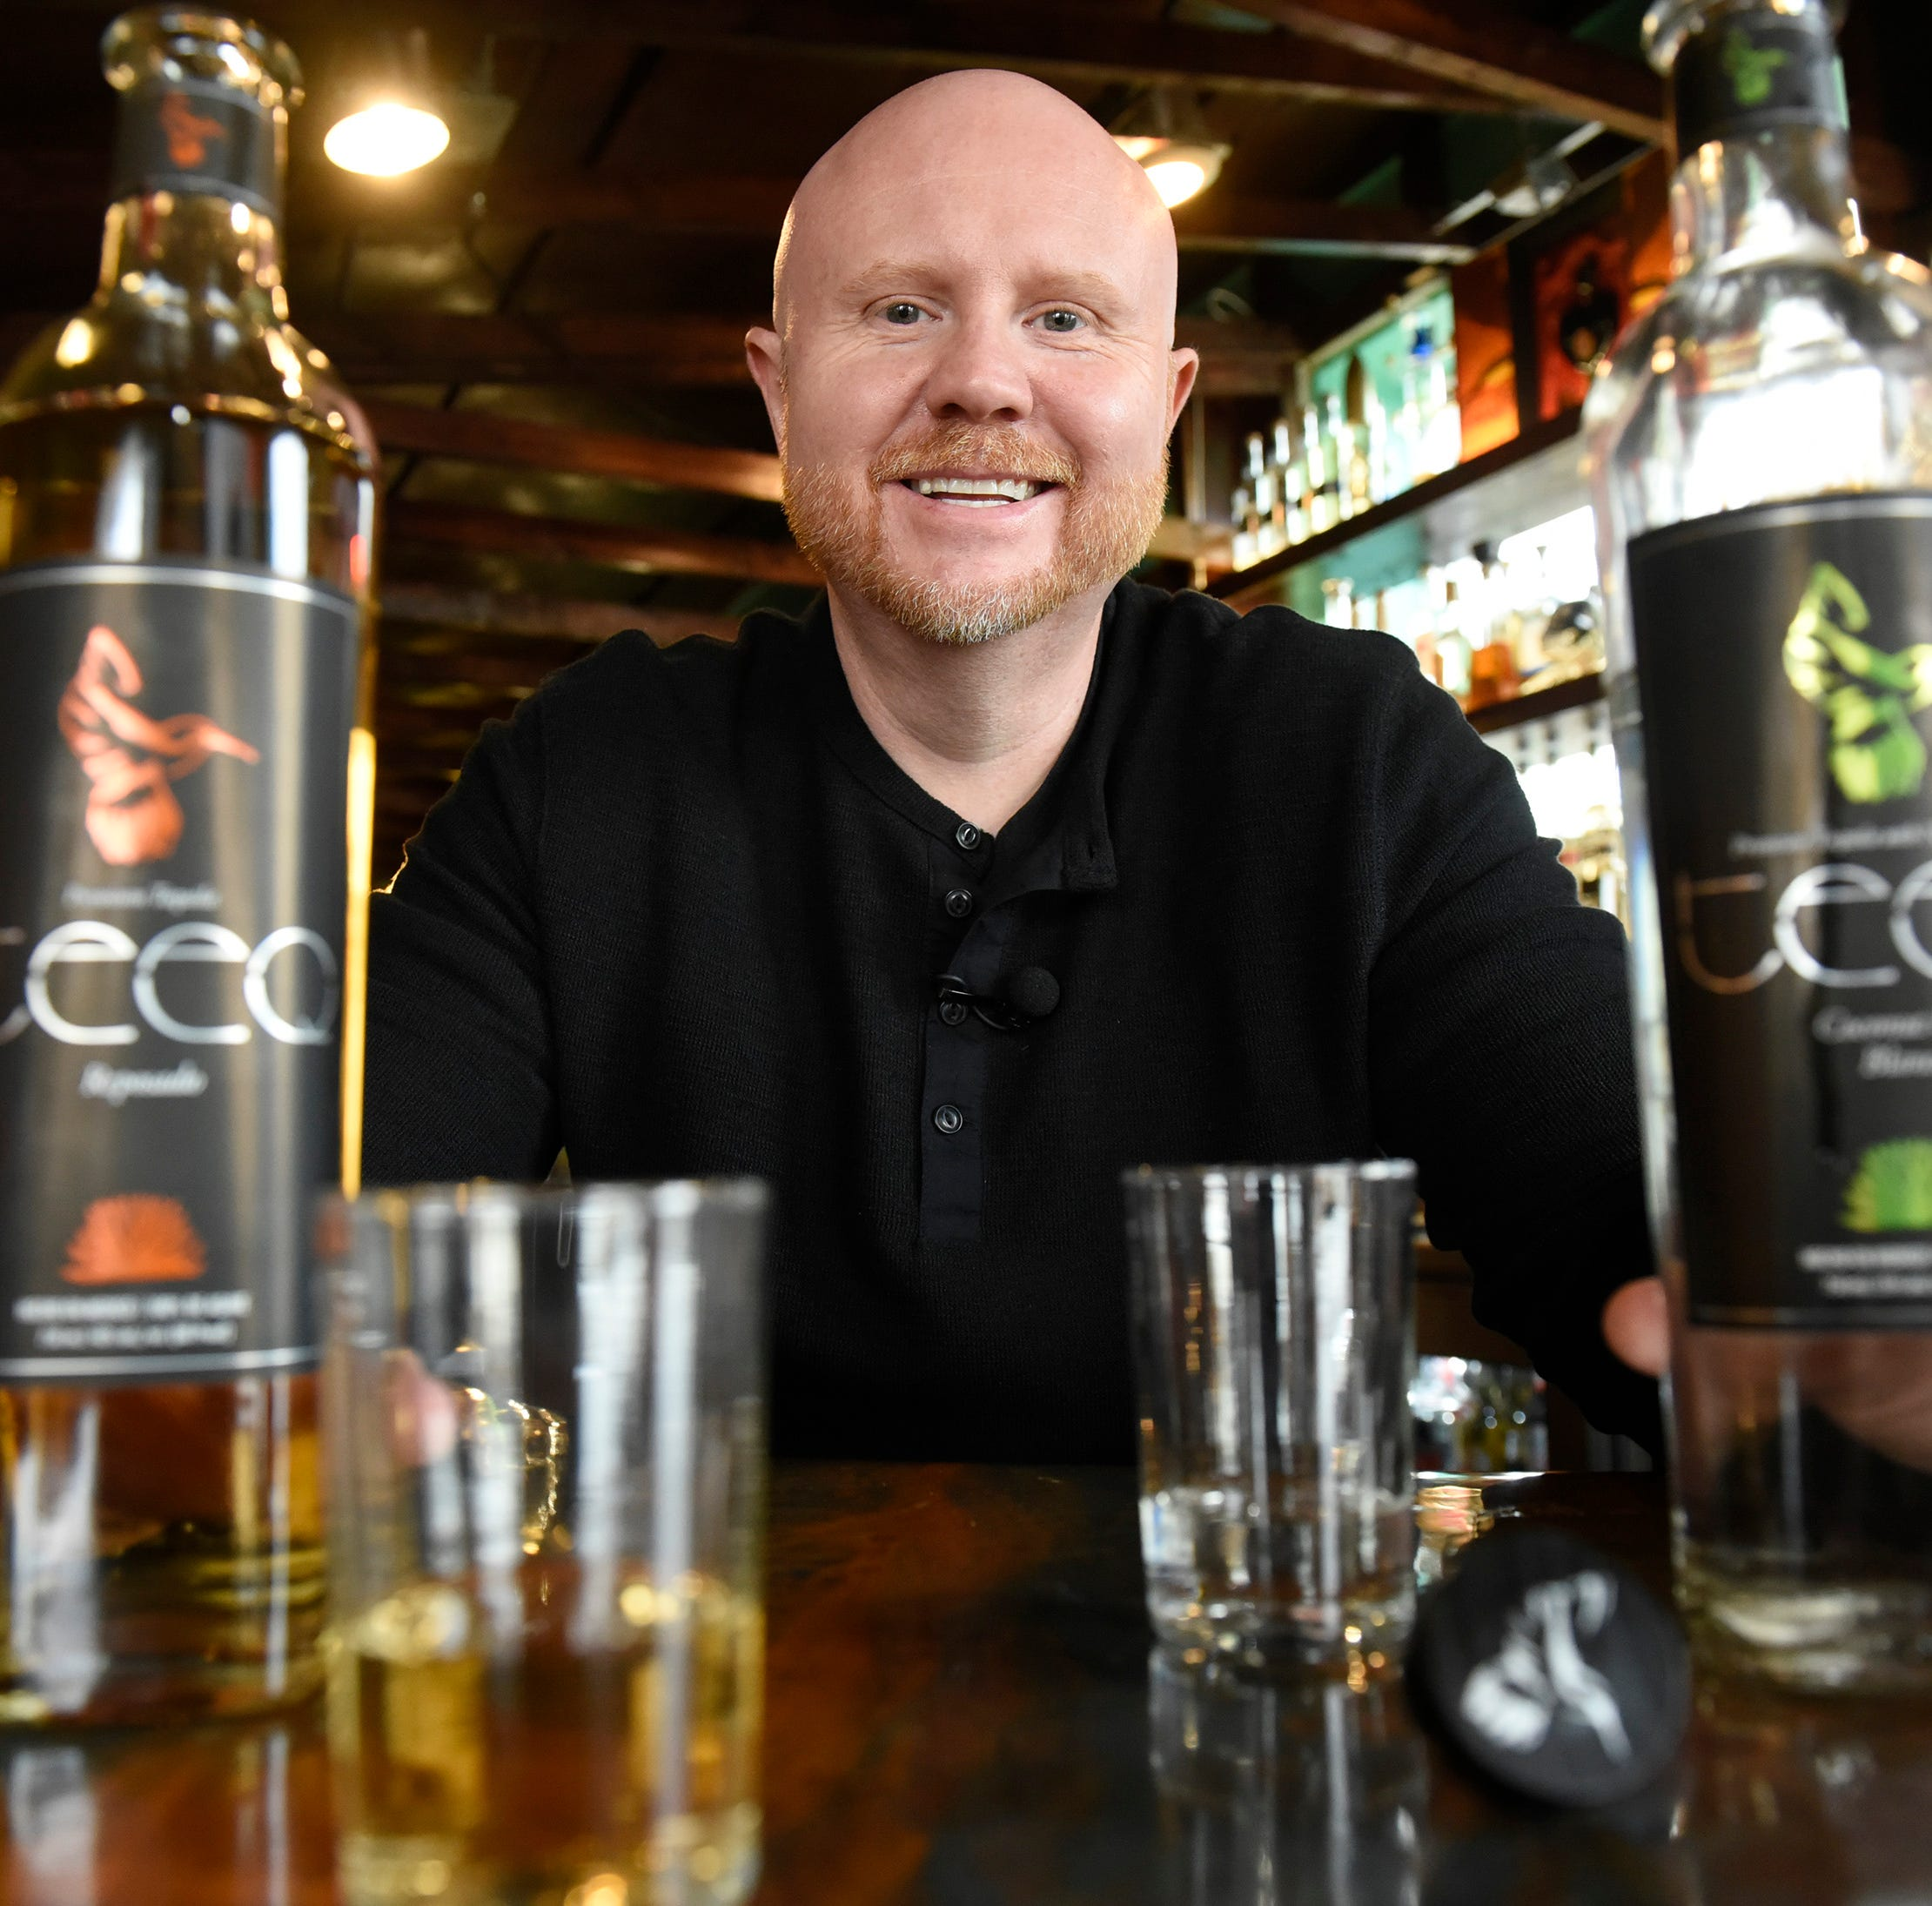 Olé! Canton man launches tequila brand that's hit shelves, bars statewide